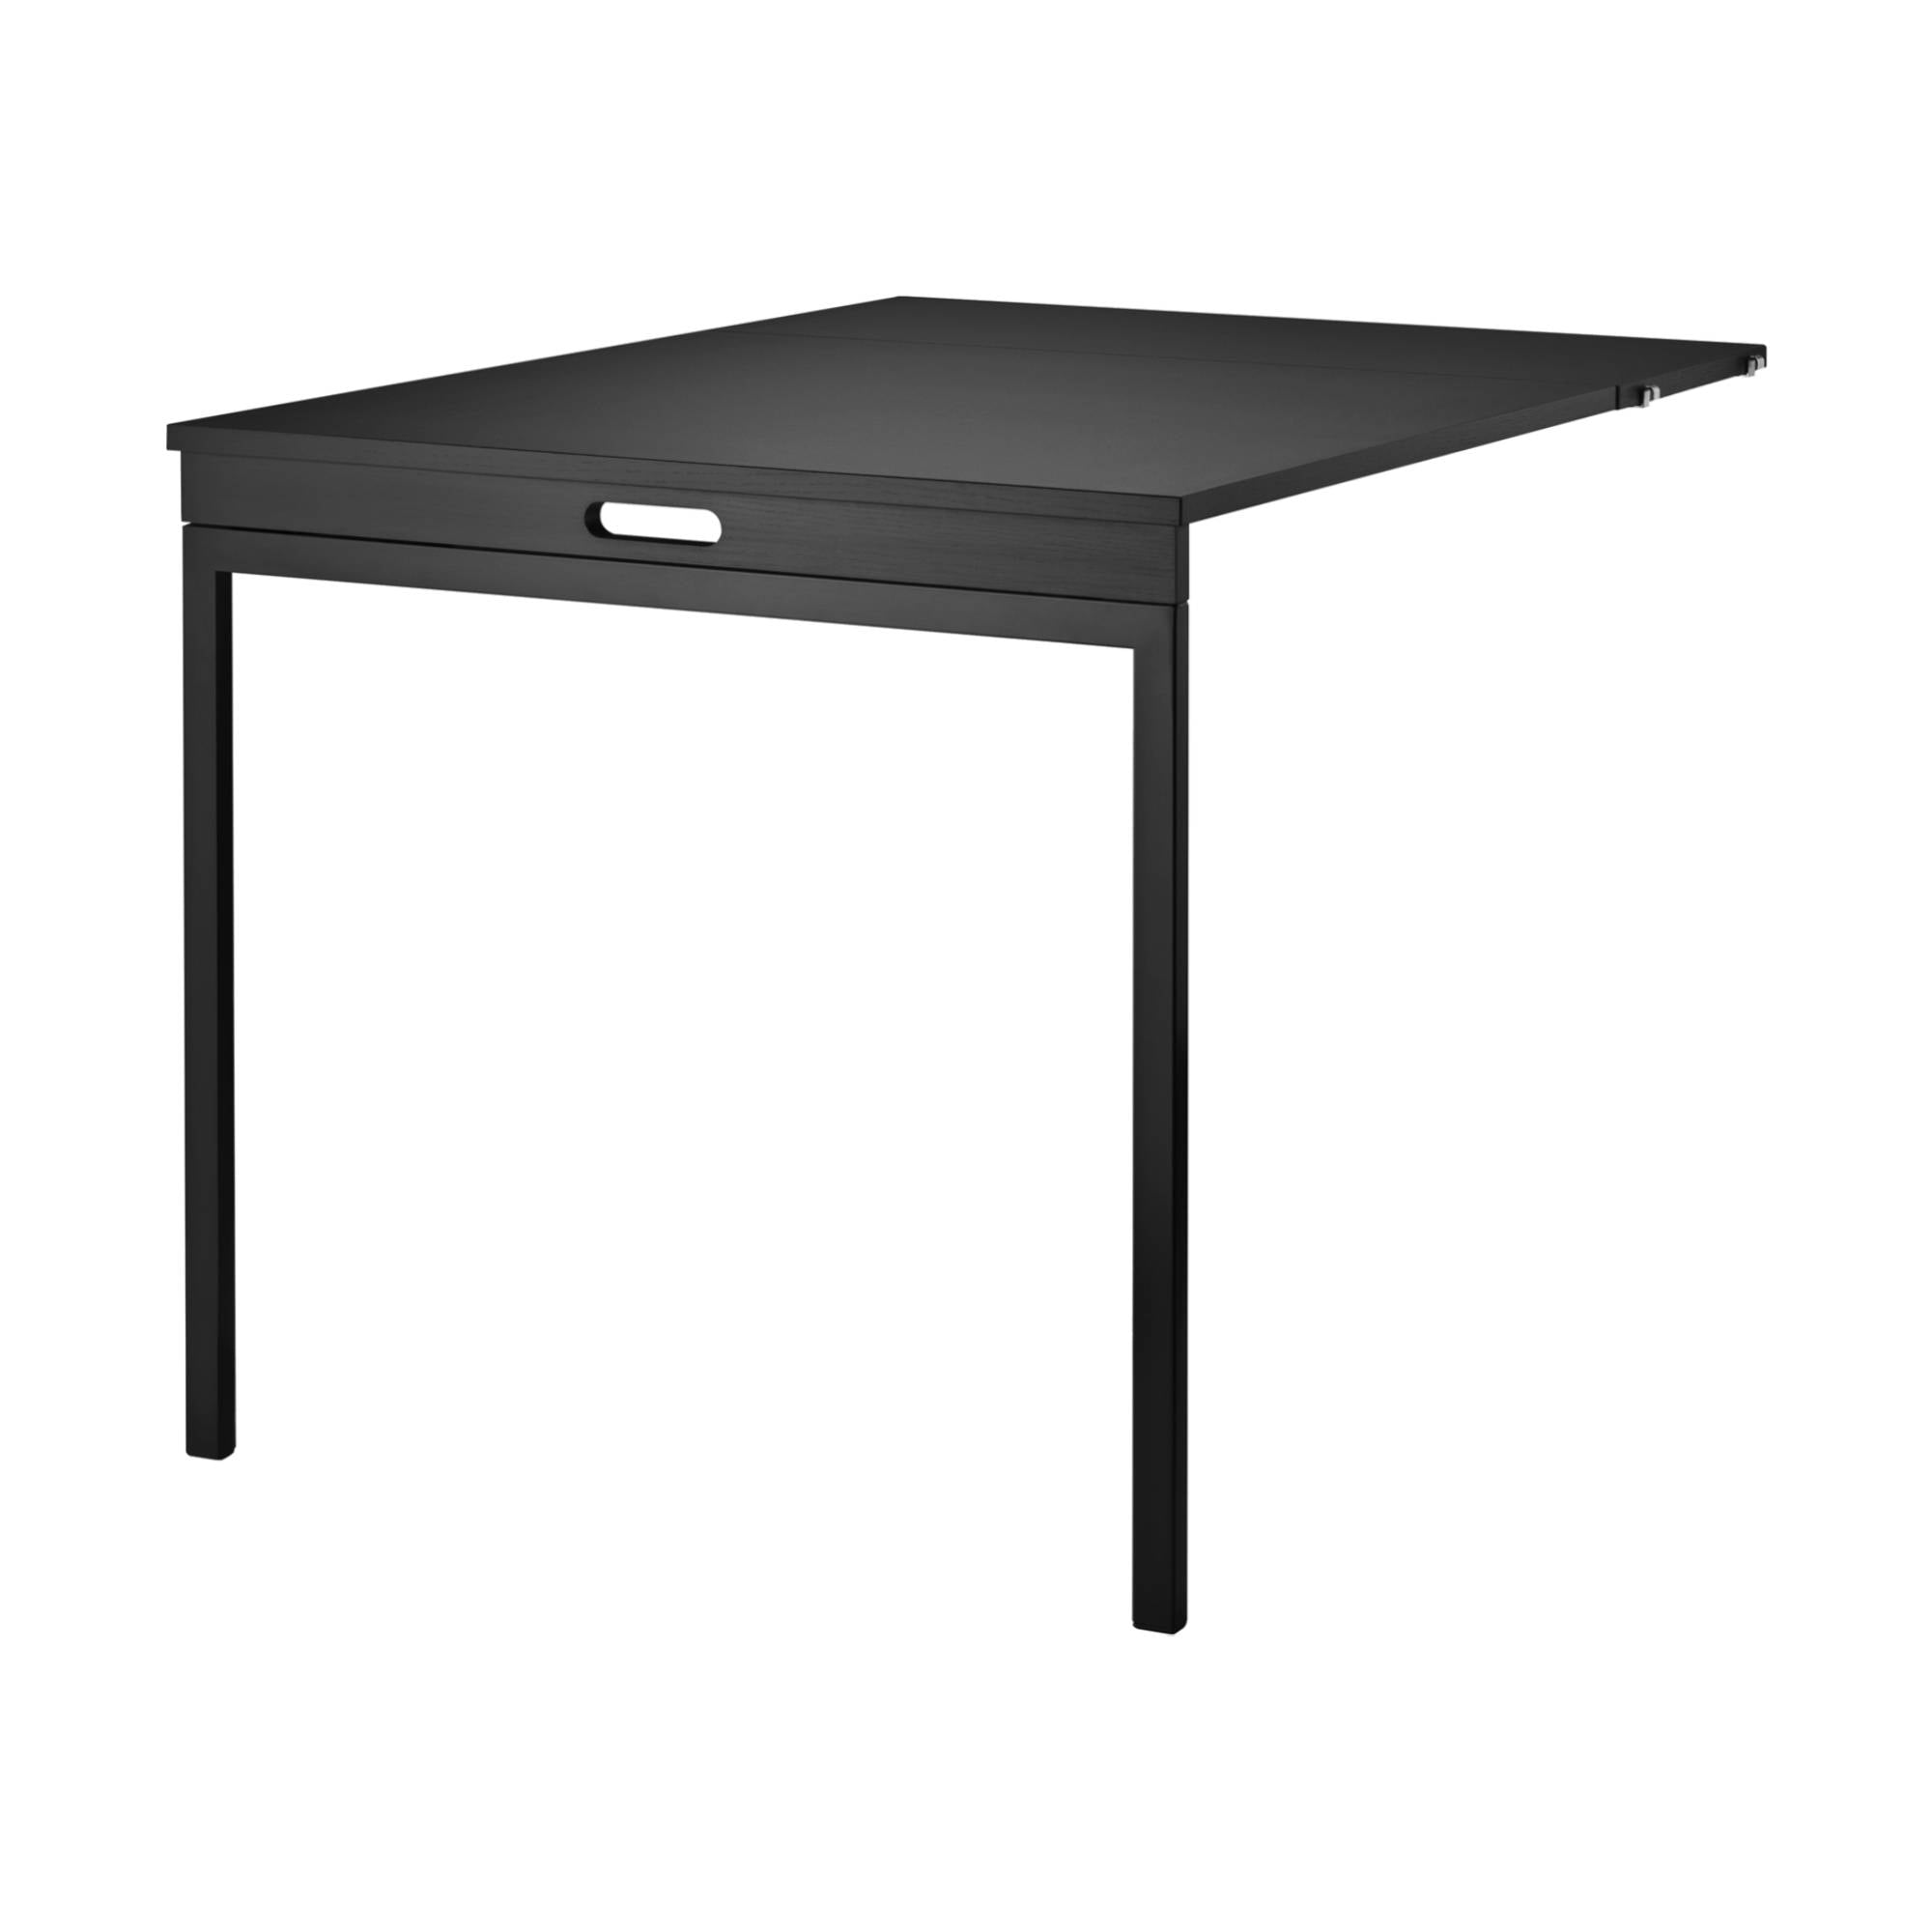 String Shelving System Folding Table: Black Stained Ash + Black